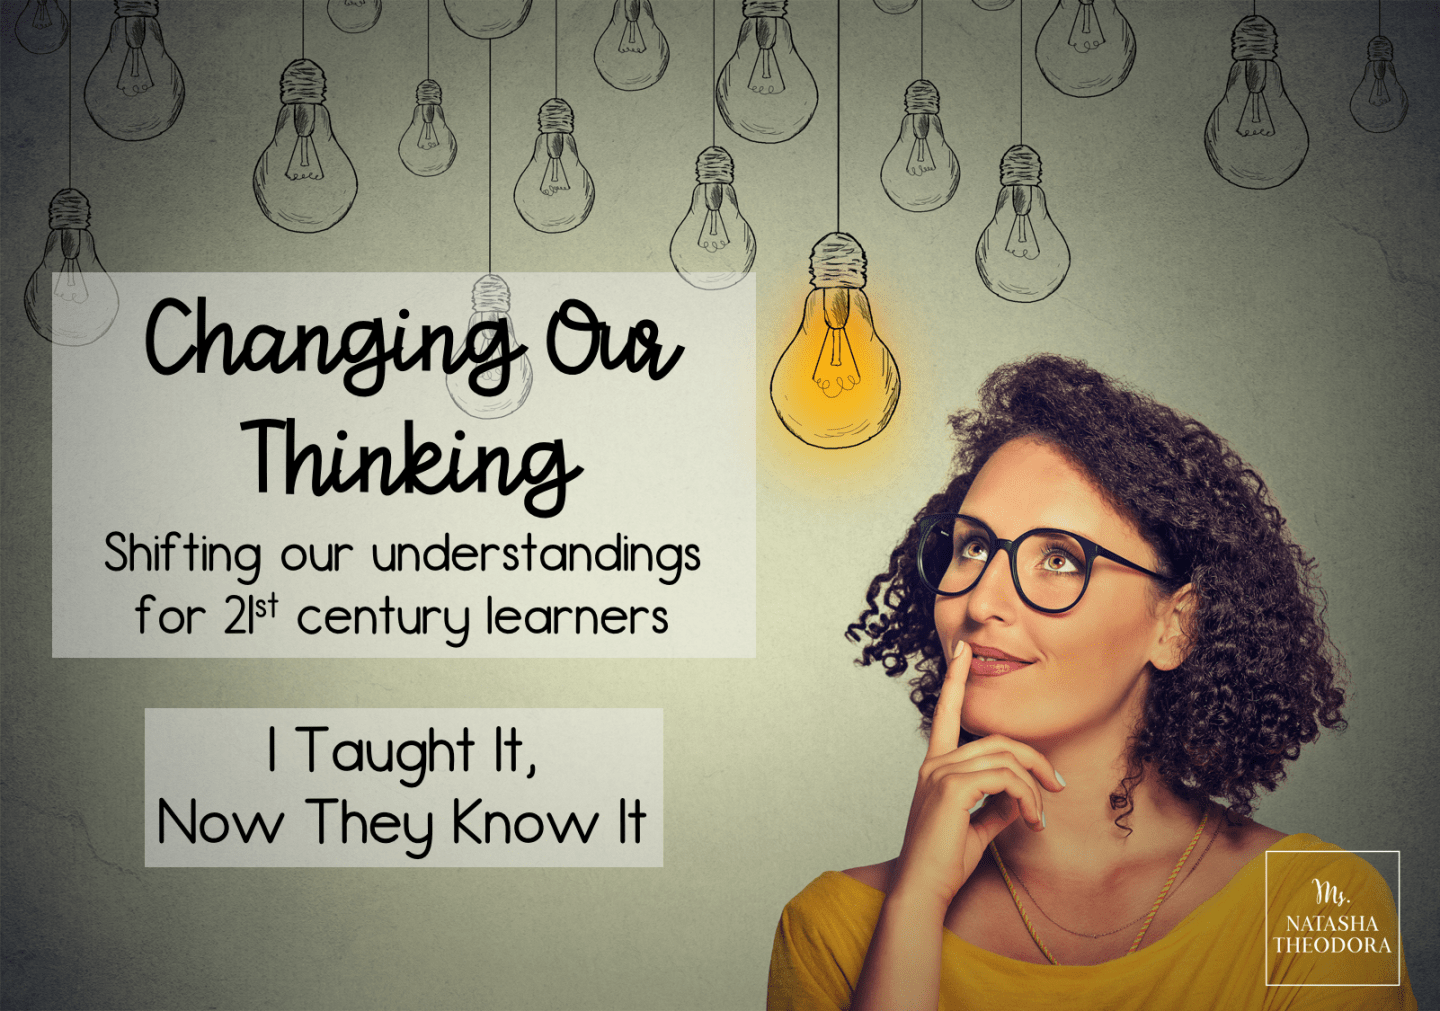 Changing Our Thinking: I Taught It, Now They Know It